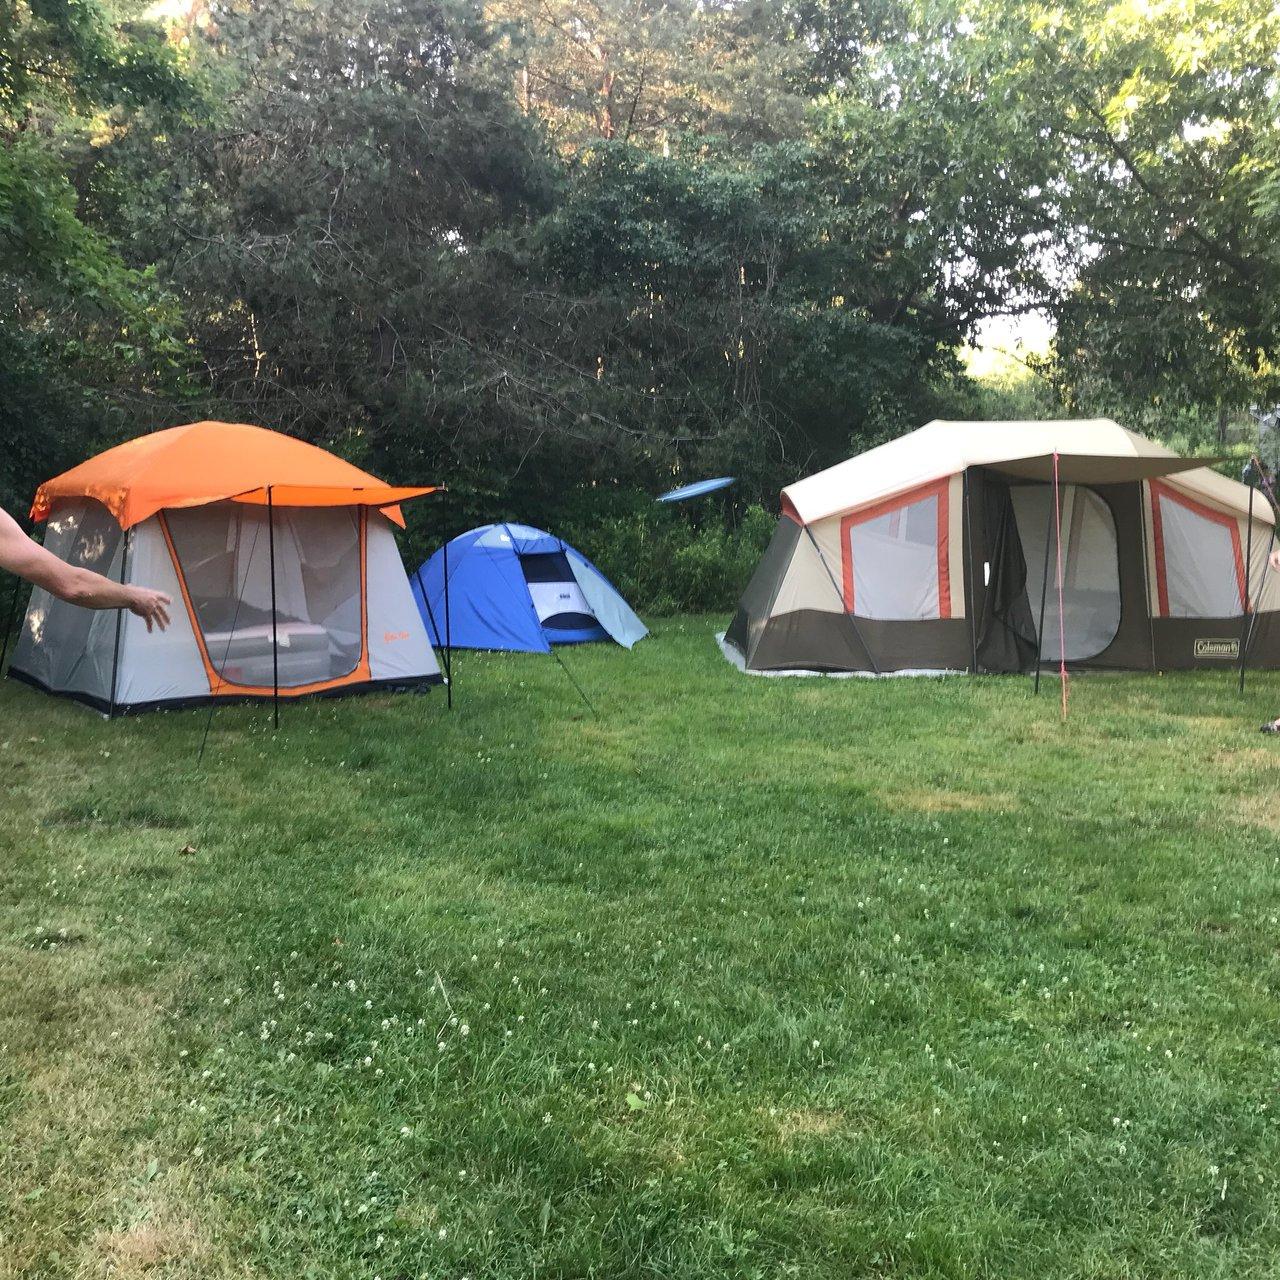 KEUKA LAKE STATE PARK CAMPGROUND - Updated 2019 Reviews (Bluff Point on bowman lake state park map, finger lakes state park map, martin creek lake state park map, conesus lake boat launch map, peebles island state park map, hither hills state park map, hamburg state park map, lake vermilion state park map, pinnacle state park map, dewolf point state park map, robert treman state park map, roper lake state park map, coles creek state park map, seneca lake state park map, lake taghkanic state park map, joseph davis state park map, knox farm state park map, orient beach state park map, cedar point state park map, mine kill state park map,